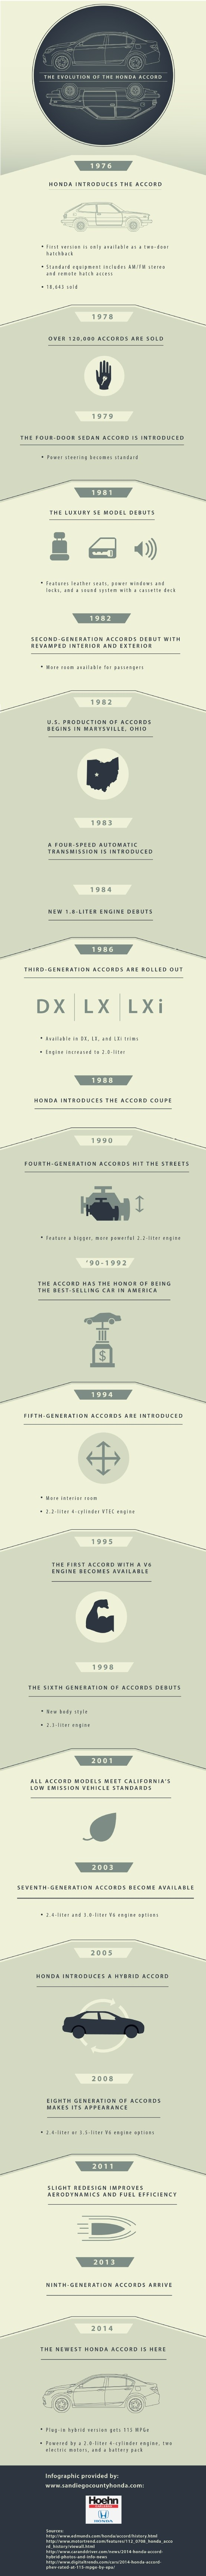 In 1998, the sixth generation of the Honda Accord was introduced to drivers. This version featured a new body style and a 2.3-liter engine! Discover other advancements the Honda Accord has made over the years on this San Diego Honda dealership infographic. Source: http://www.sandiegocountyhonda.com/667909/2013/03/21/the-evolution-of-the-honda-accord-infogrpahic.html